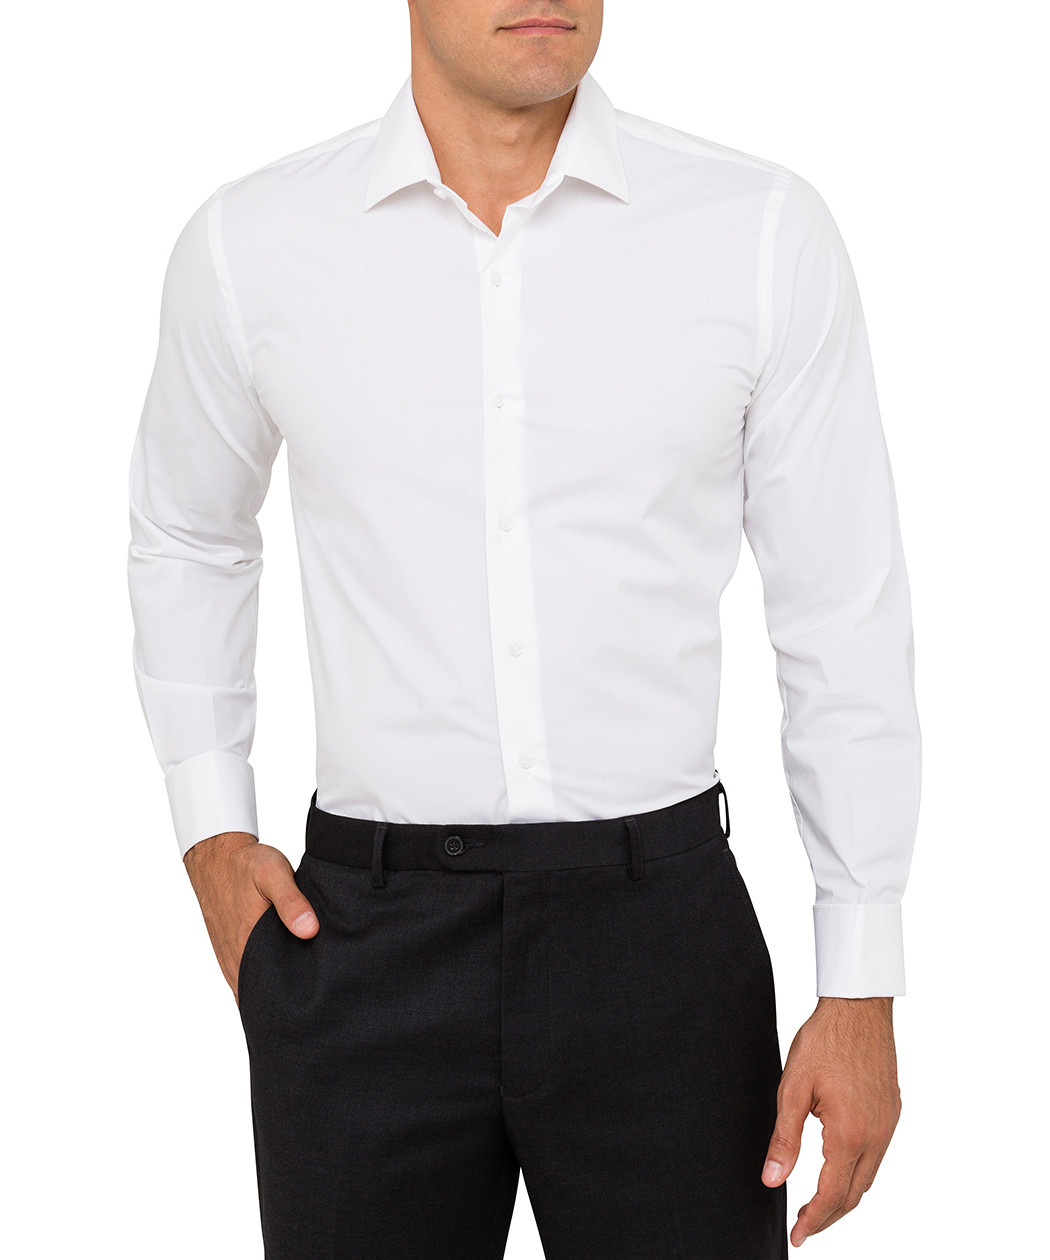 Van heusen slim fit cotton white shirt van heusen for How to clean white dress shirts